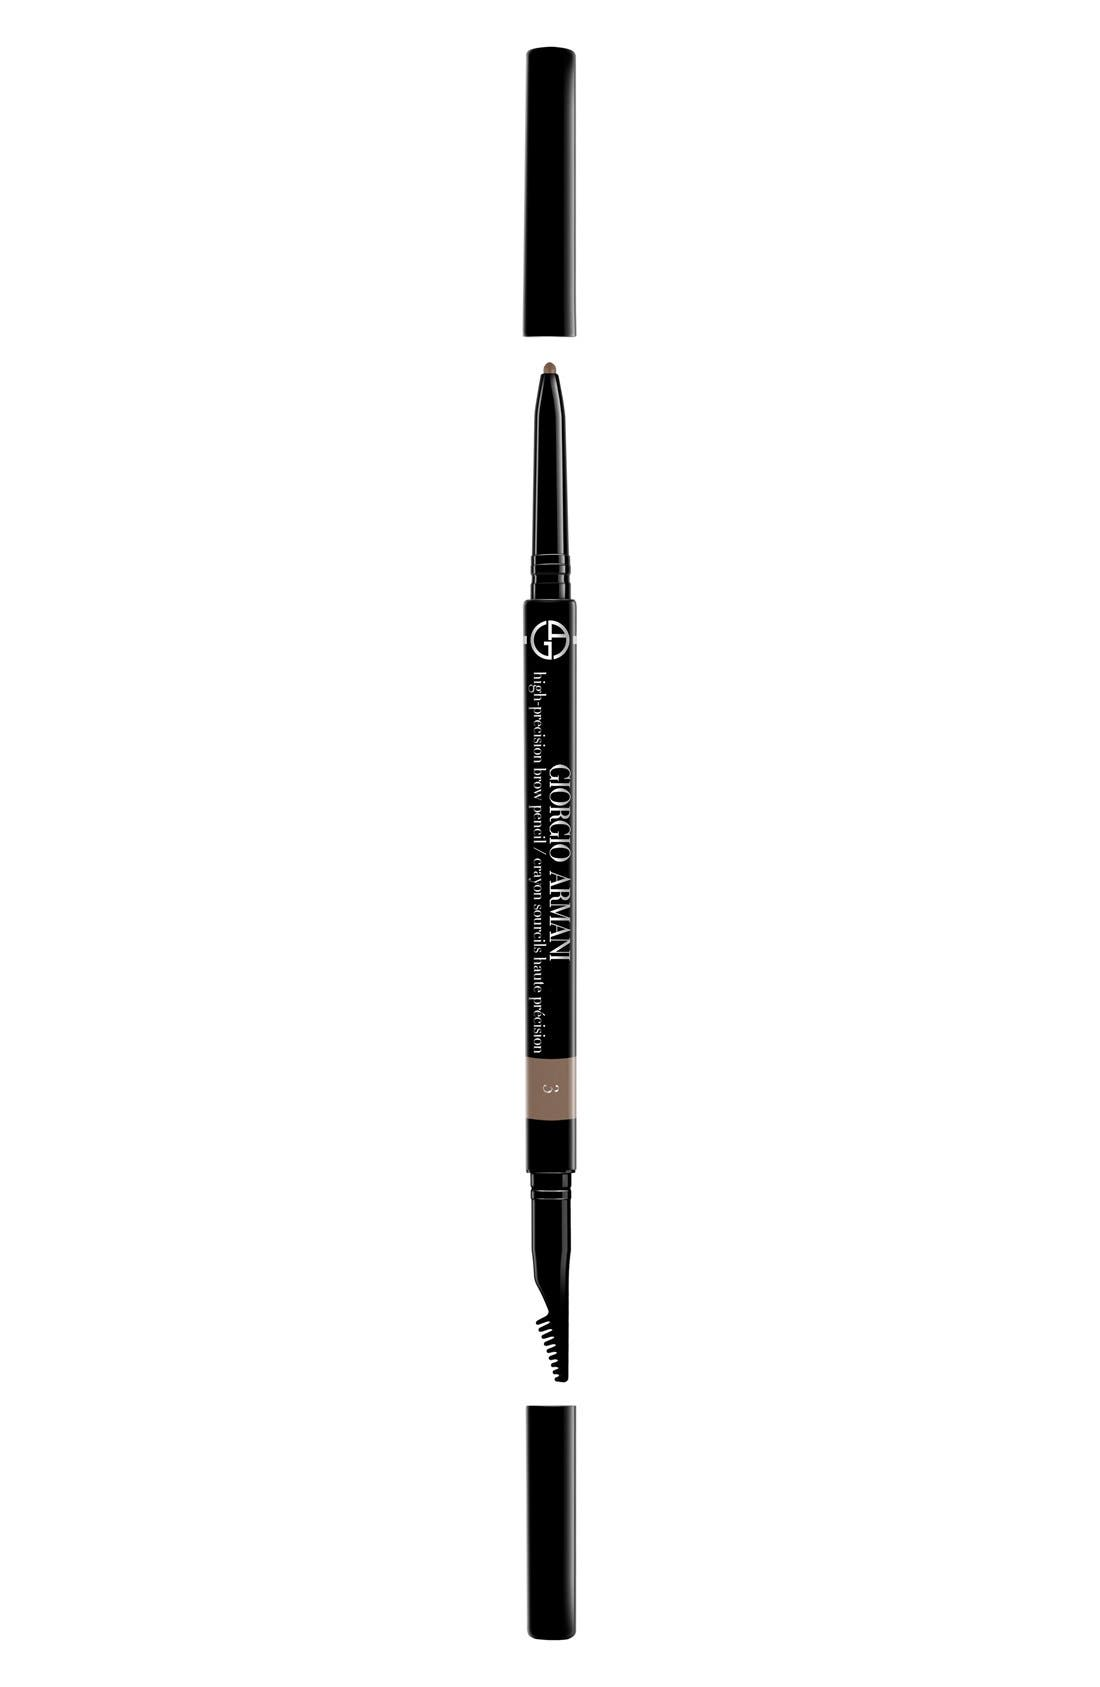 Giorgio Armani 'High-Precision' Brow Pencil